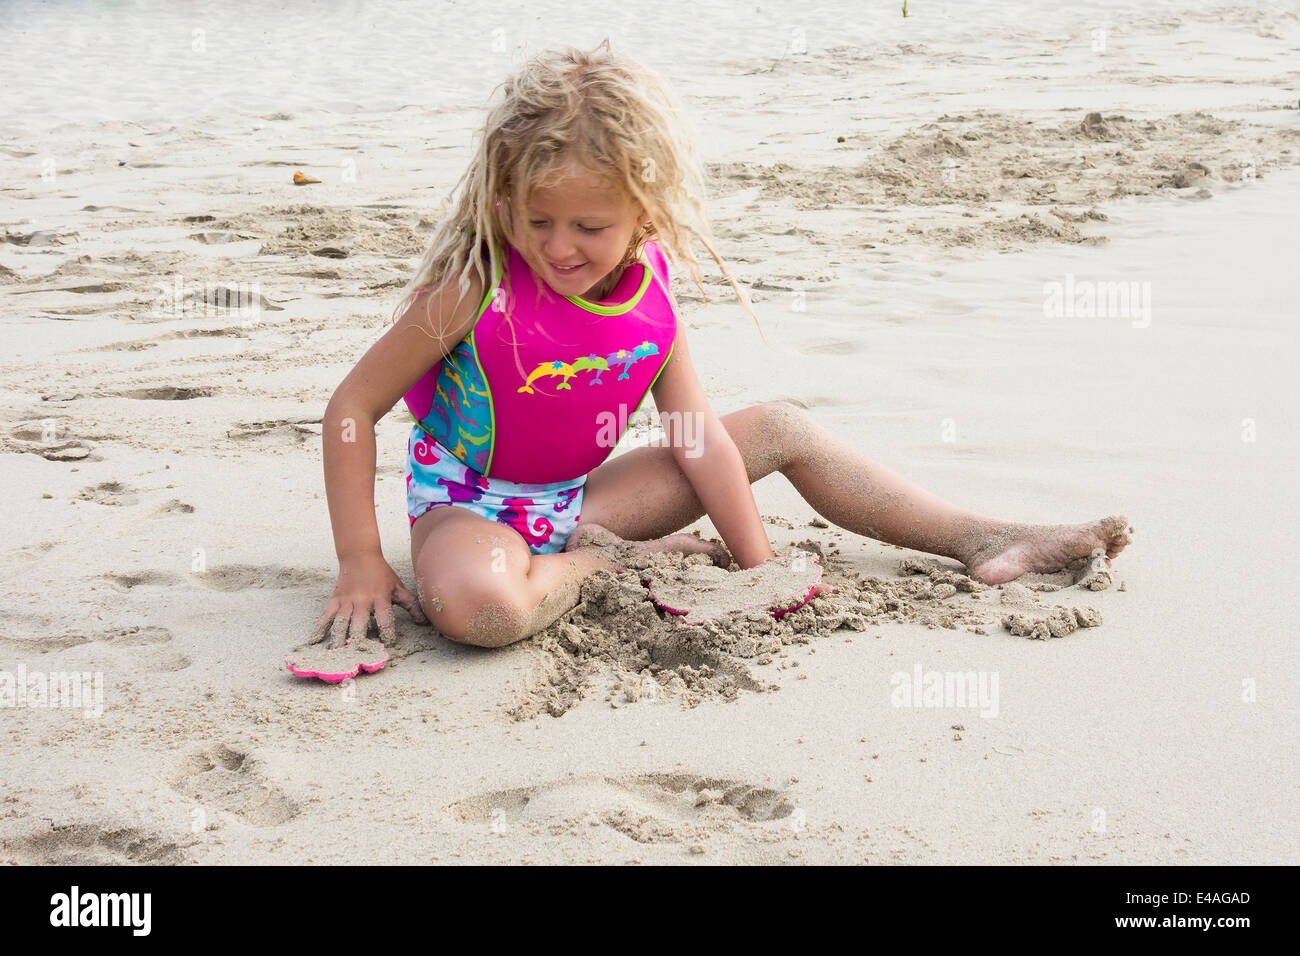 A 5 Year Old Blond Caucasian Girl Plays With Plastic Sand